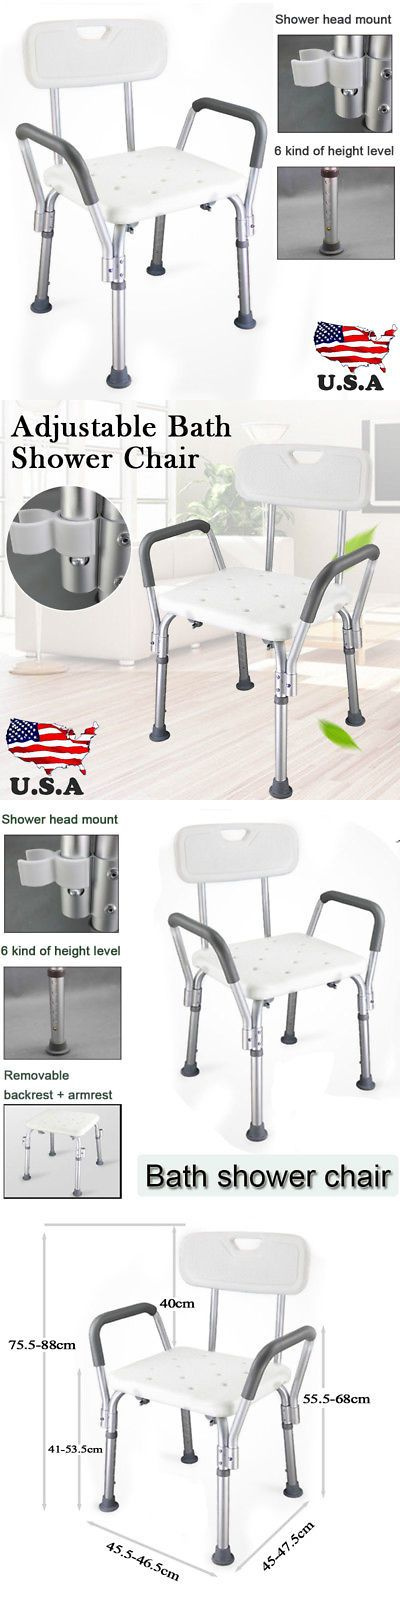 Shower and Bath Seats: Medical Shower Bath Chair Adjustable Bench Stool Seat W Detachable Back And Arm -> BUY IT NOW ONLY: $30.89 on eBay!